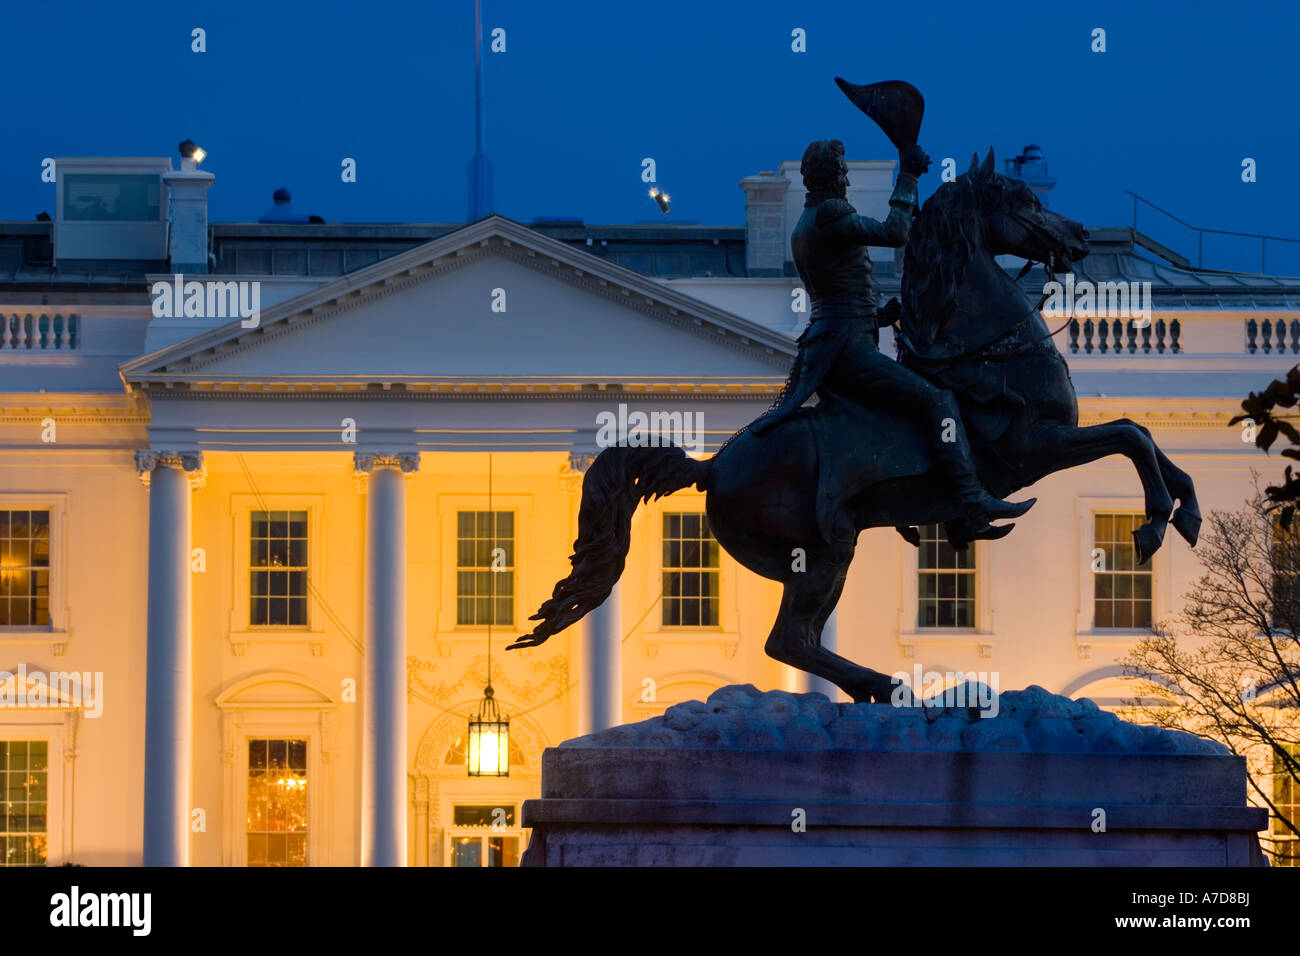 White House Washington DC night. The North Portico and the equestrian statue of Andrew Jackson in Lafayette Square. - Stock Image